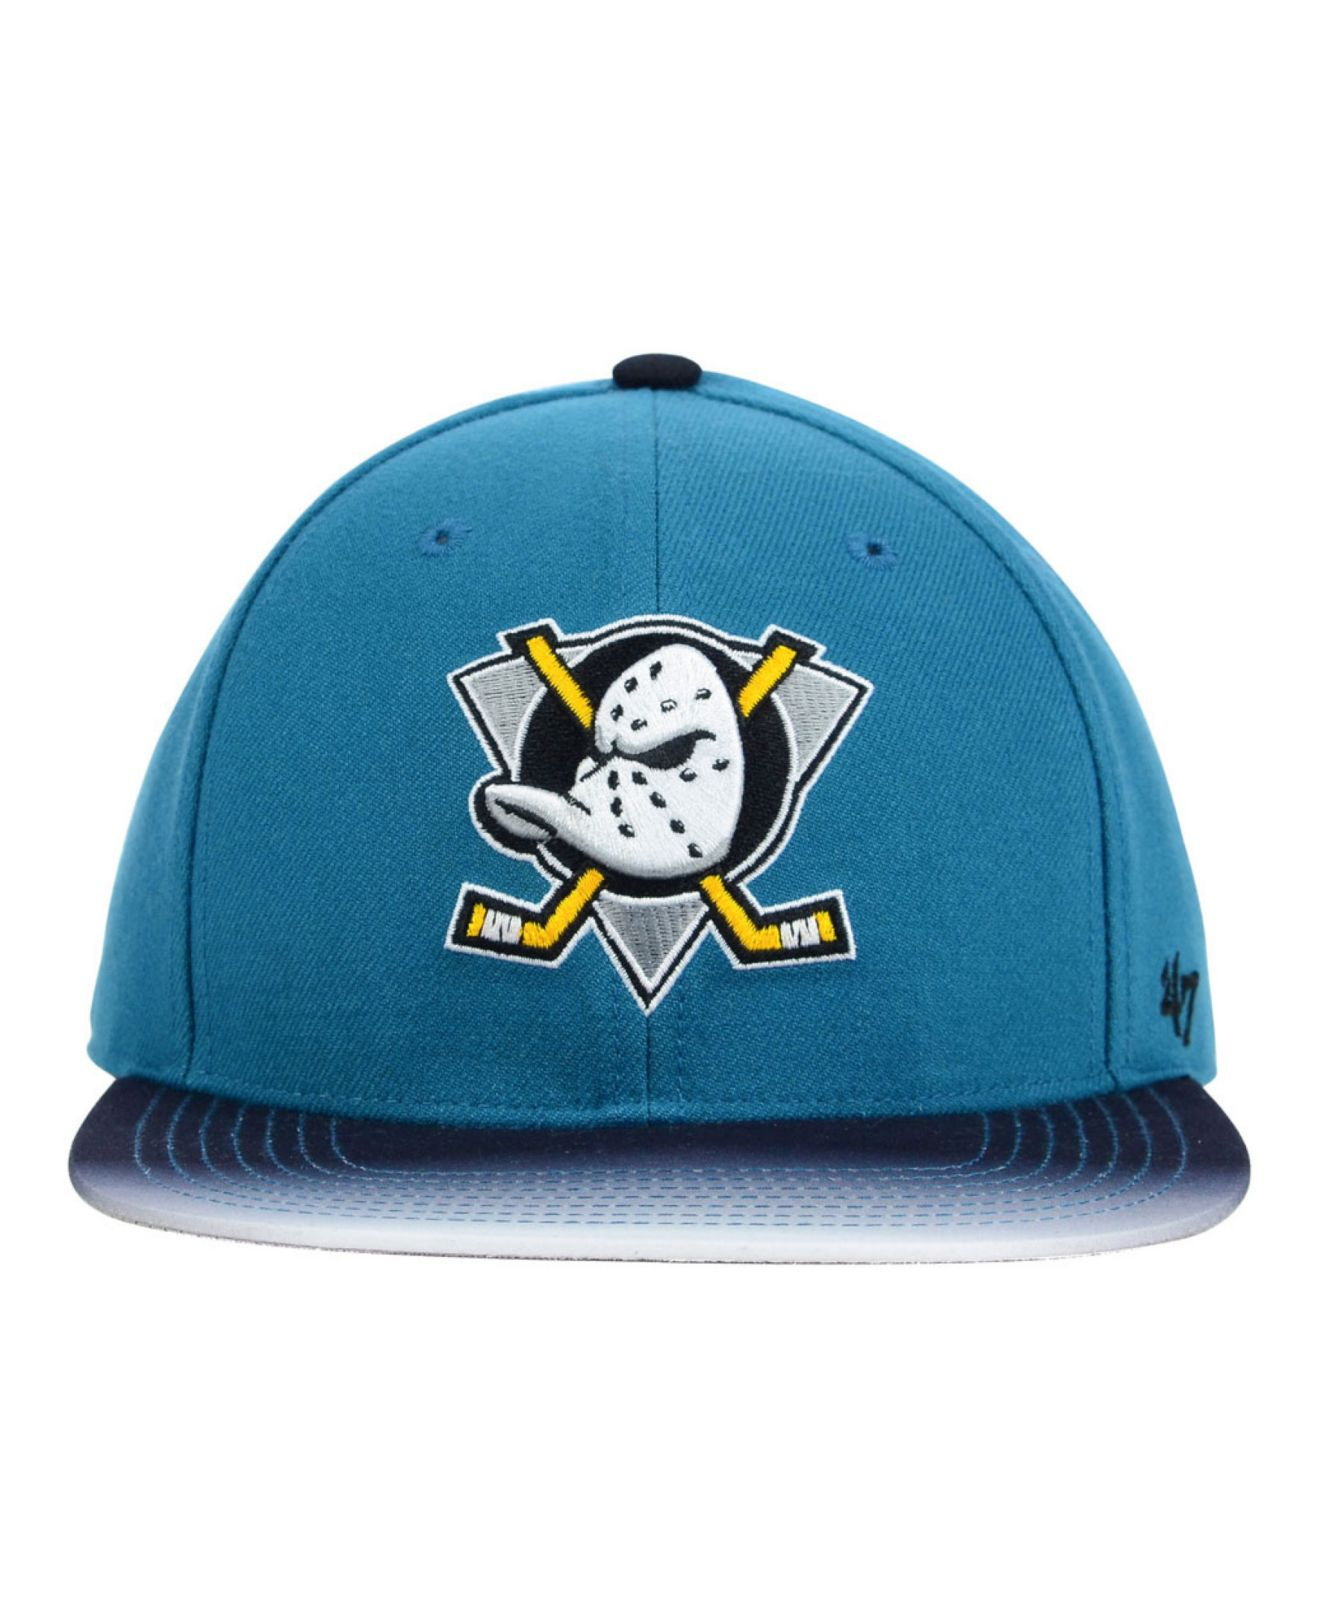 ab4ebd25b73 Lyst - 47 Brand Anaheim Ducks Dissolve Snapback Cap in Blue for Men